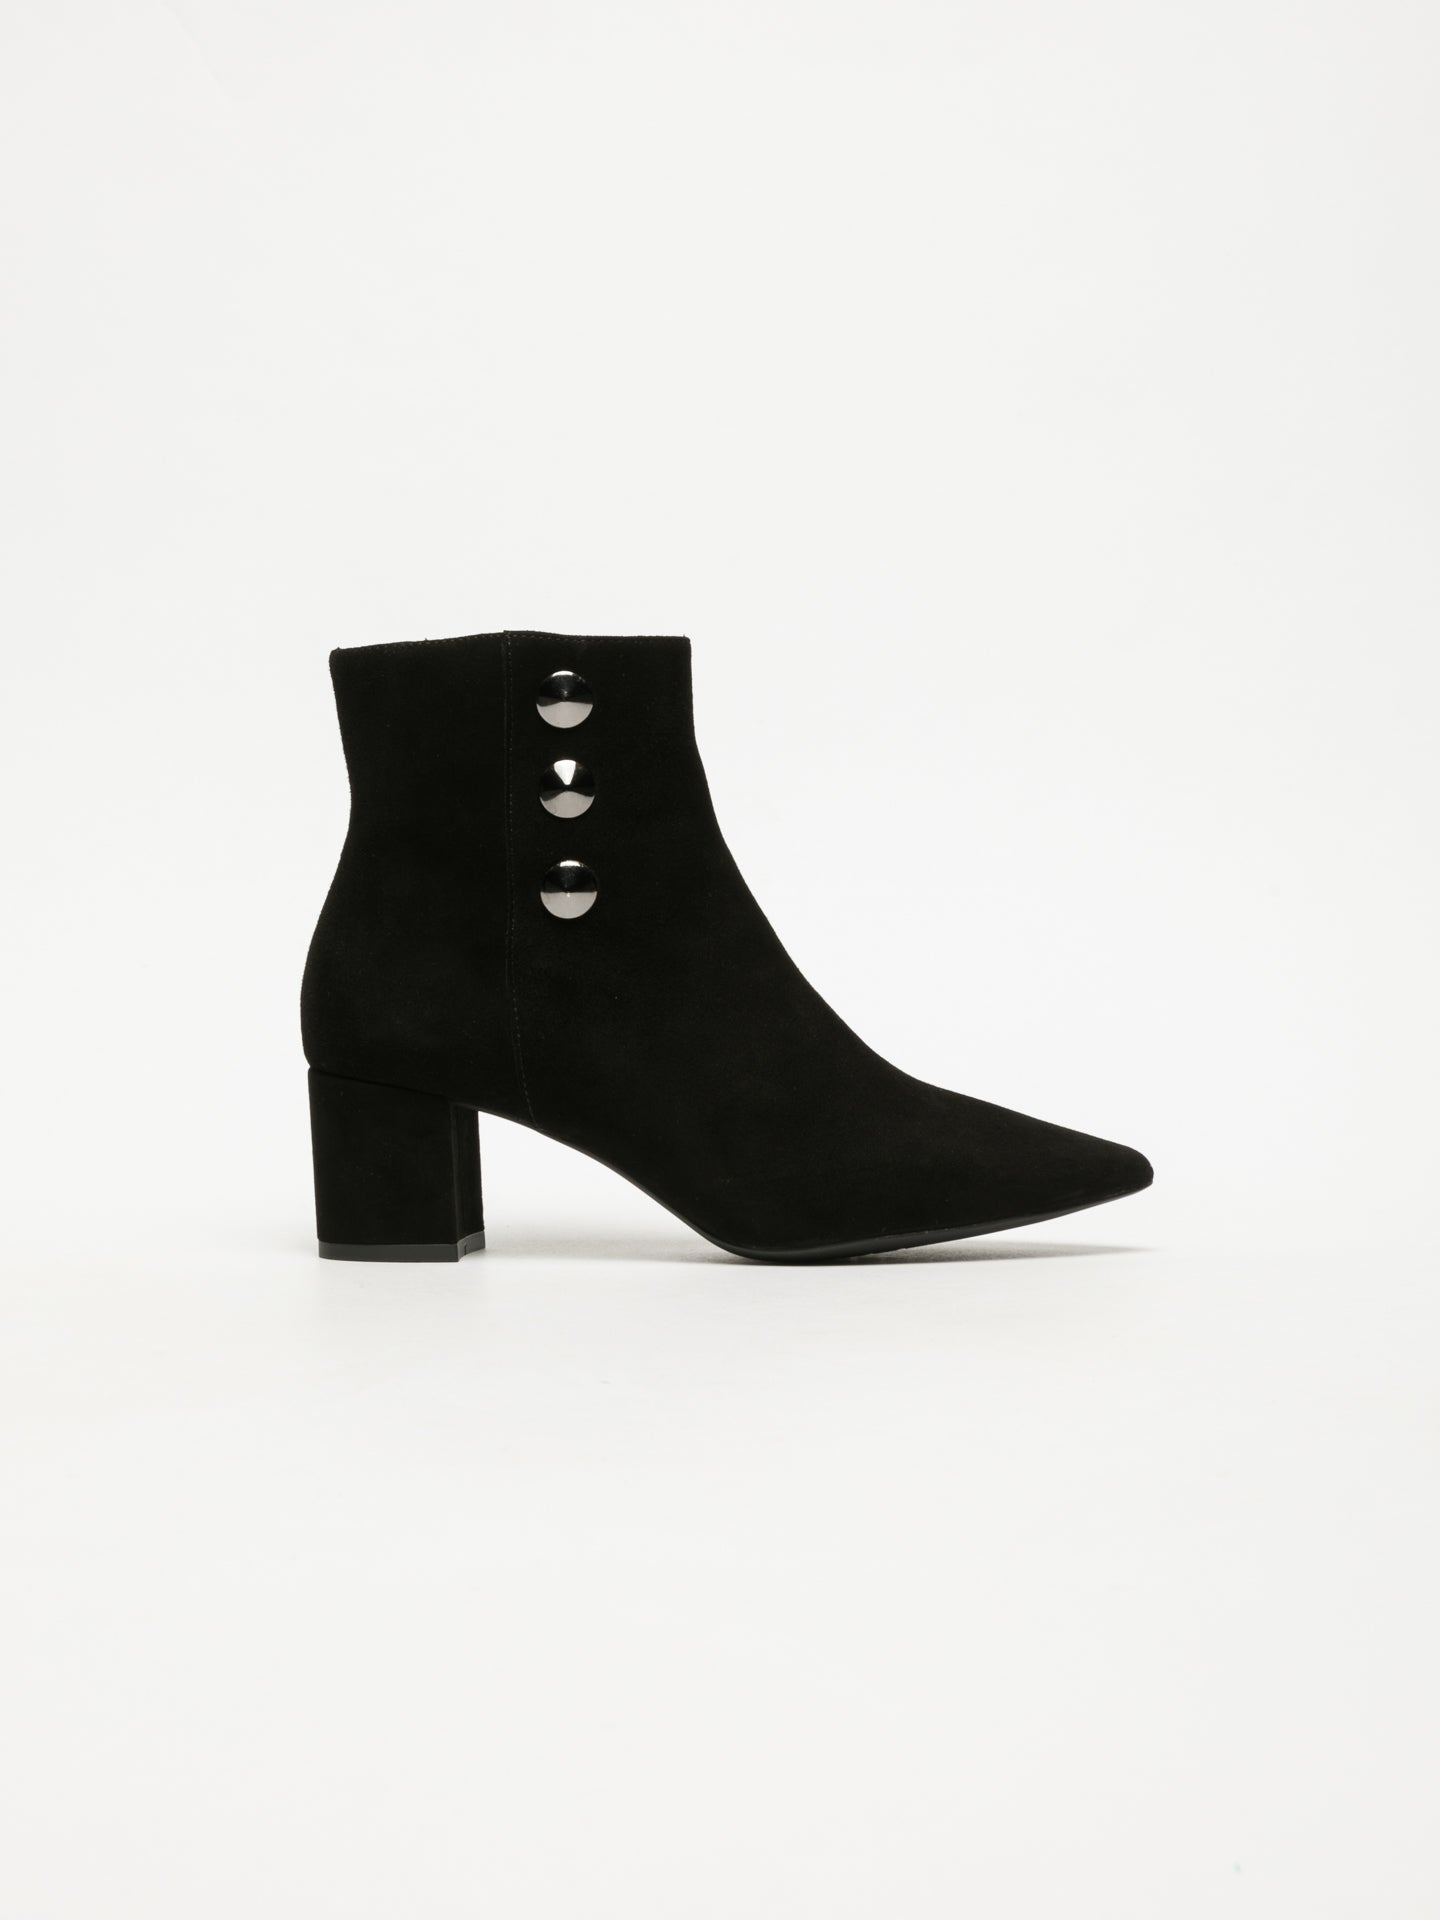 Sofia Costa Black Zip Up Ankle Boots